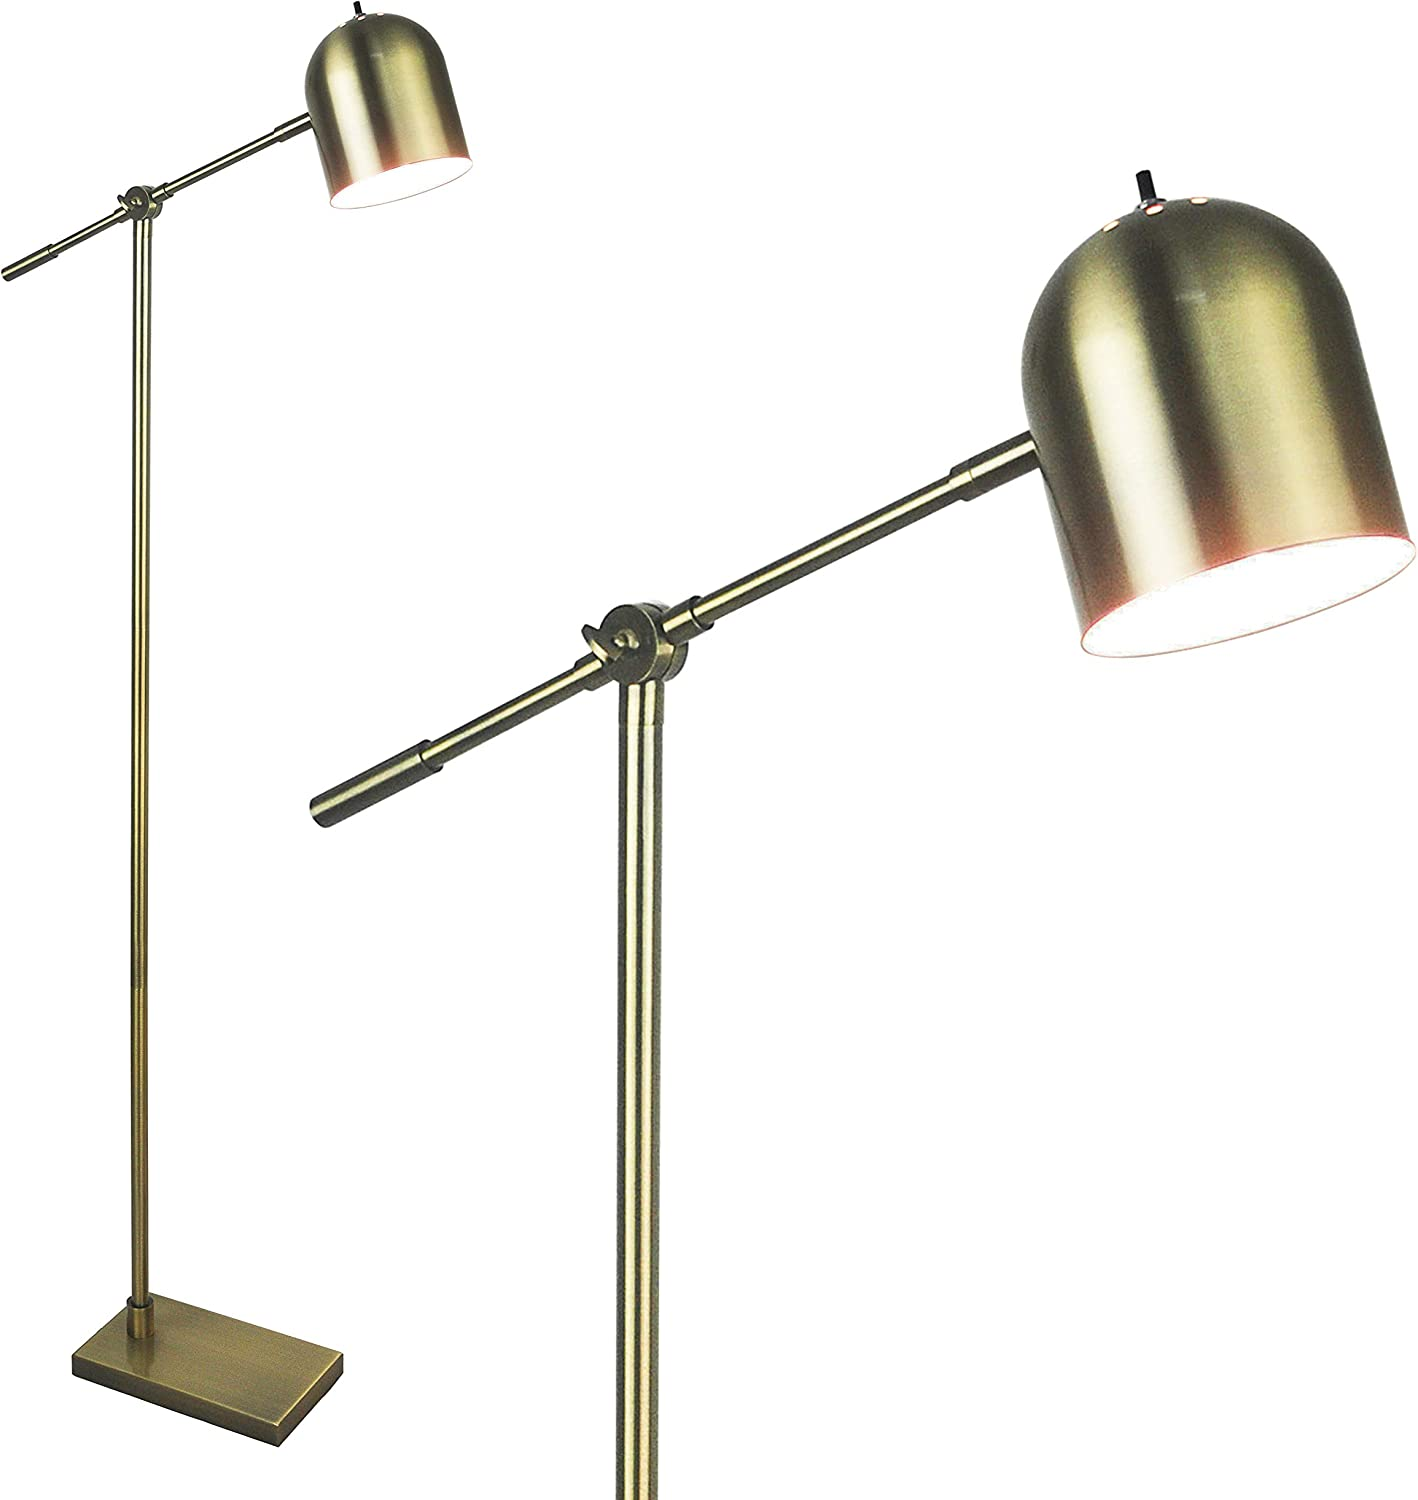 Light Accents Floor Lamp Adjustable Cantilever Modern Bright Standing Lamp Showroom Quality 59  Tall Brushed gold Finish